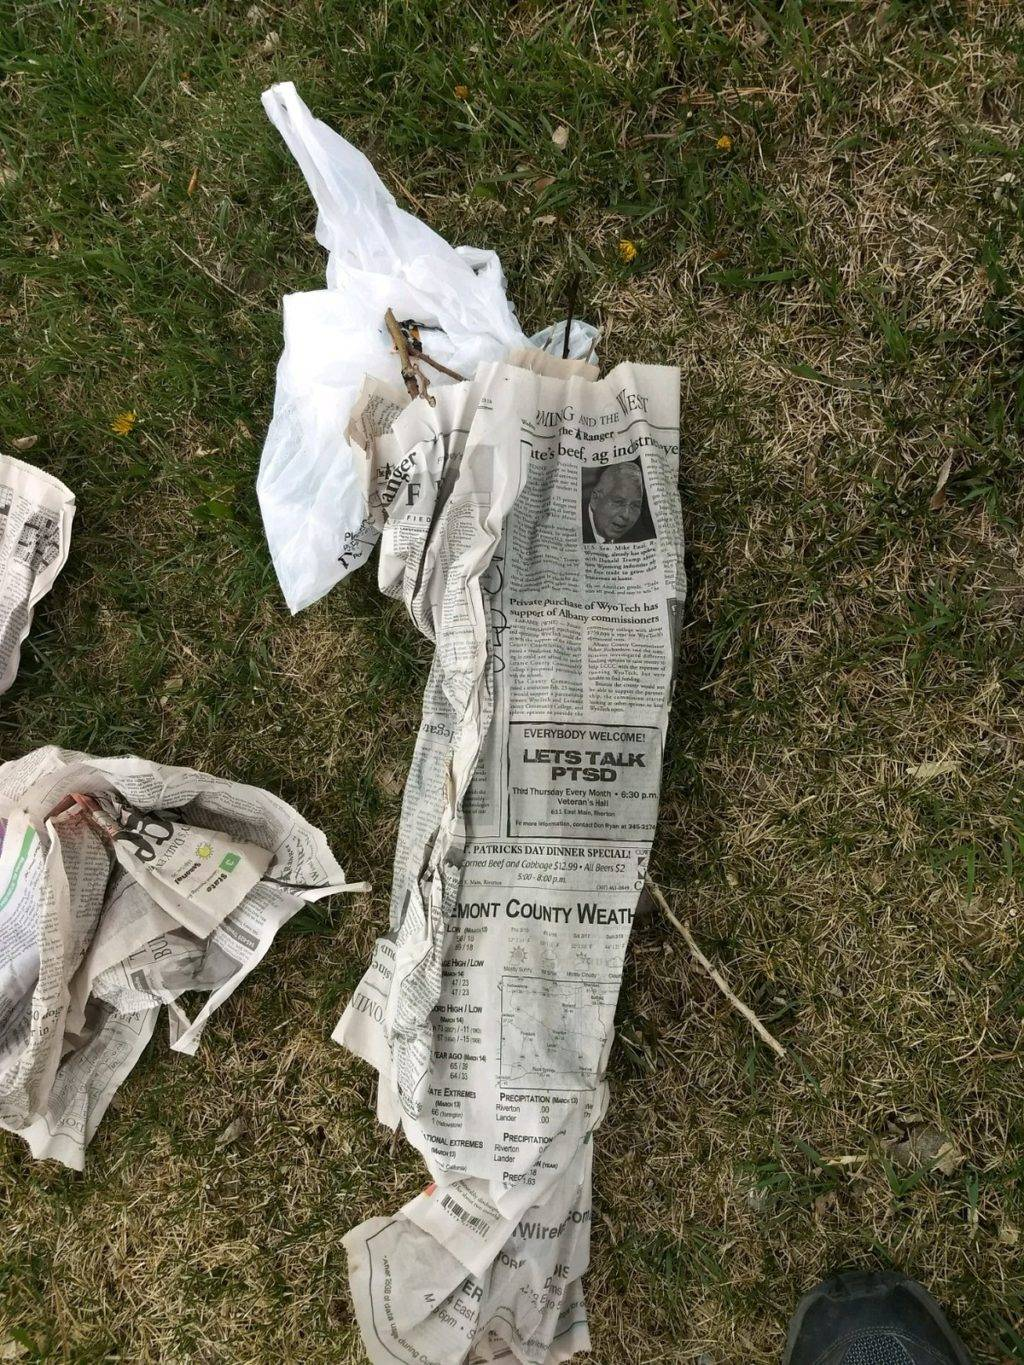 cuttings wrapped in moist newspaper to graft